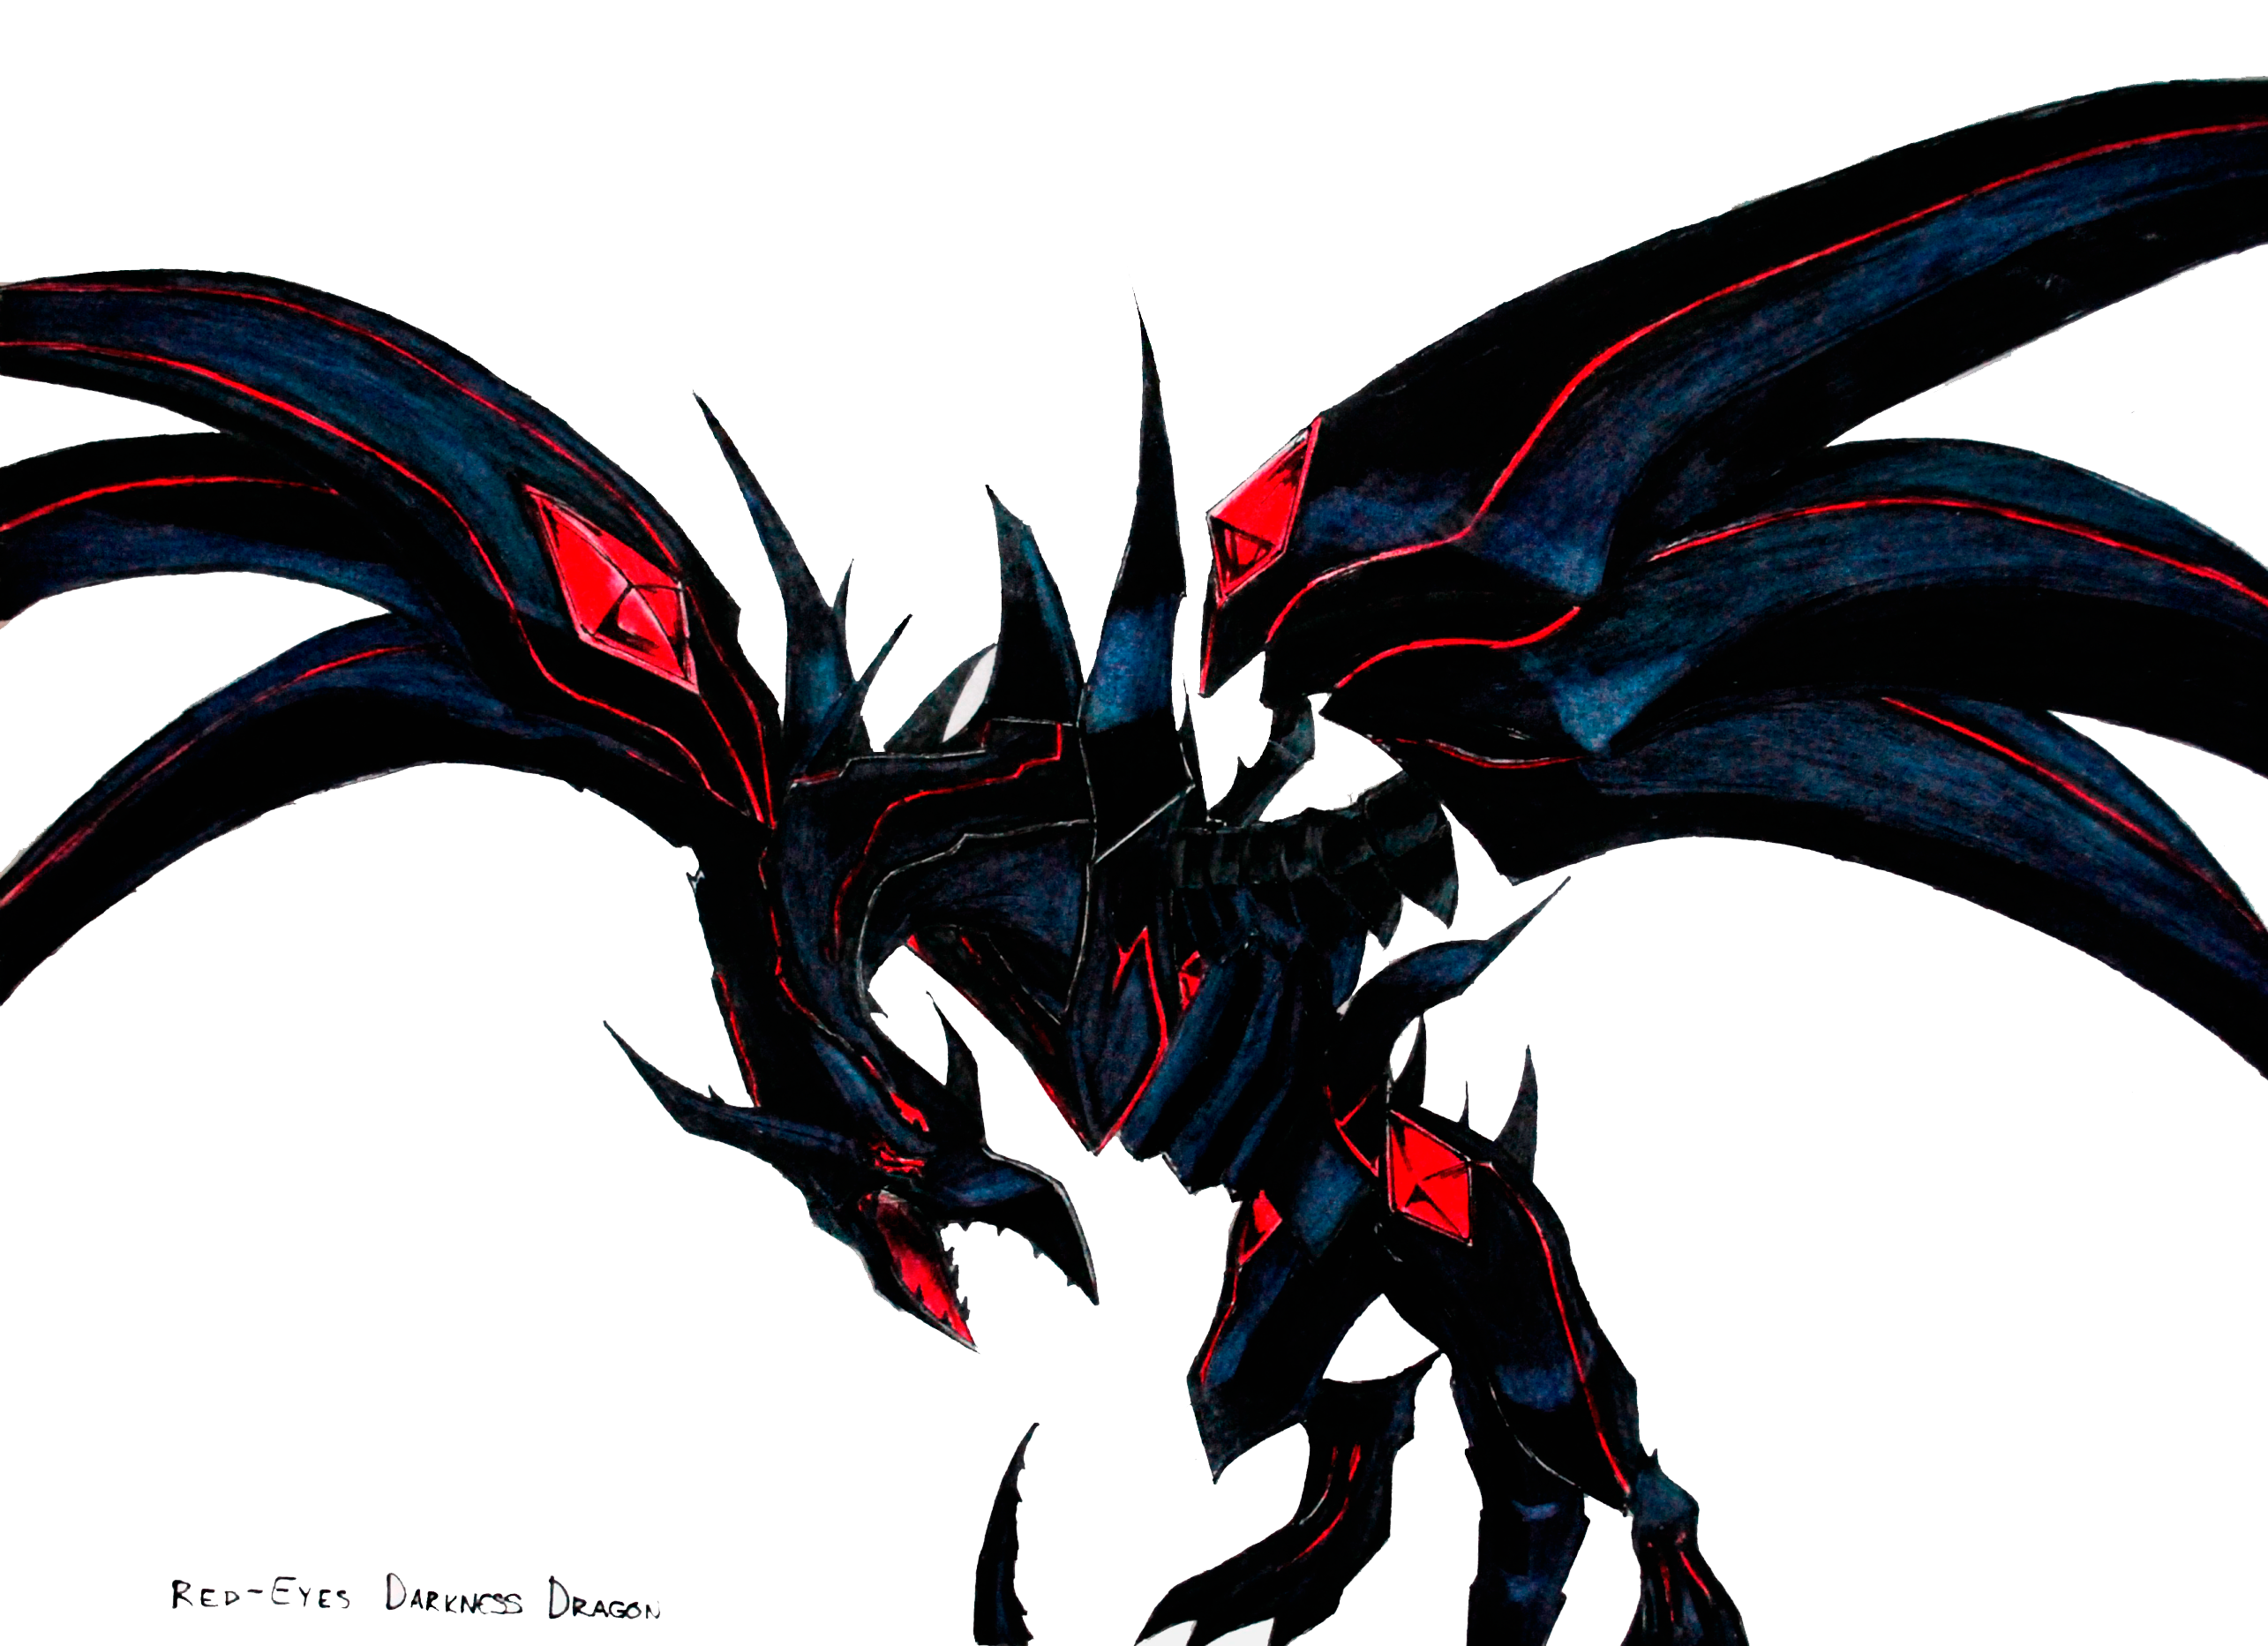 46 Red Eyes B Dragon Wallpaper Gif Colorful Wallpaper Wallpaper Cool Backgrounds